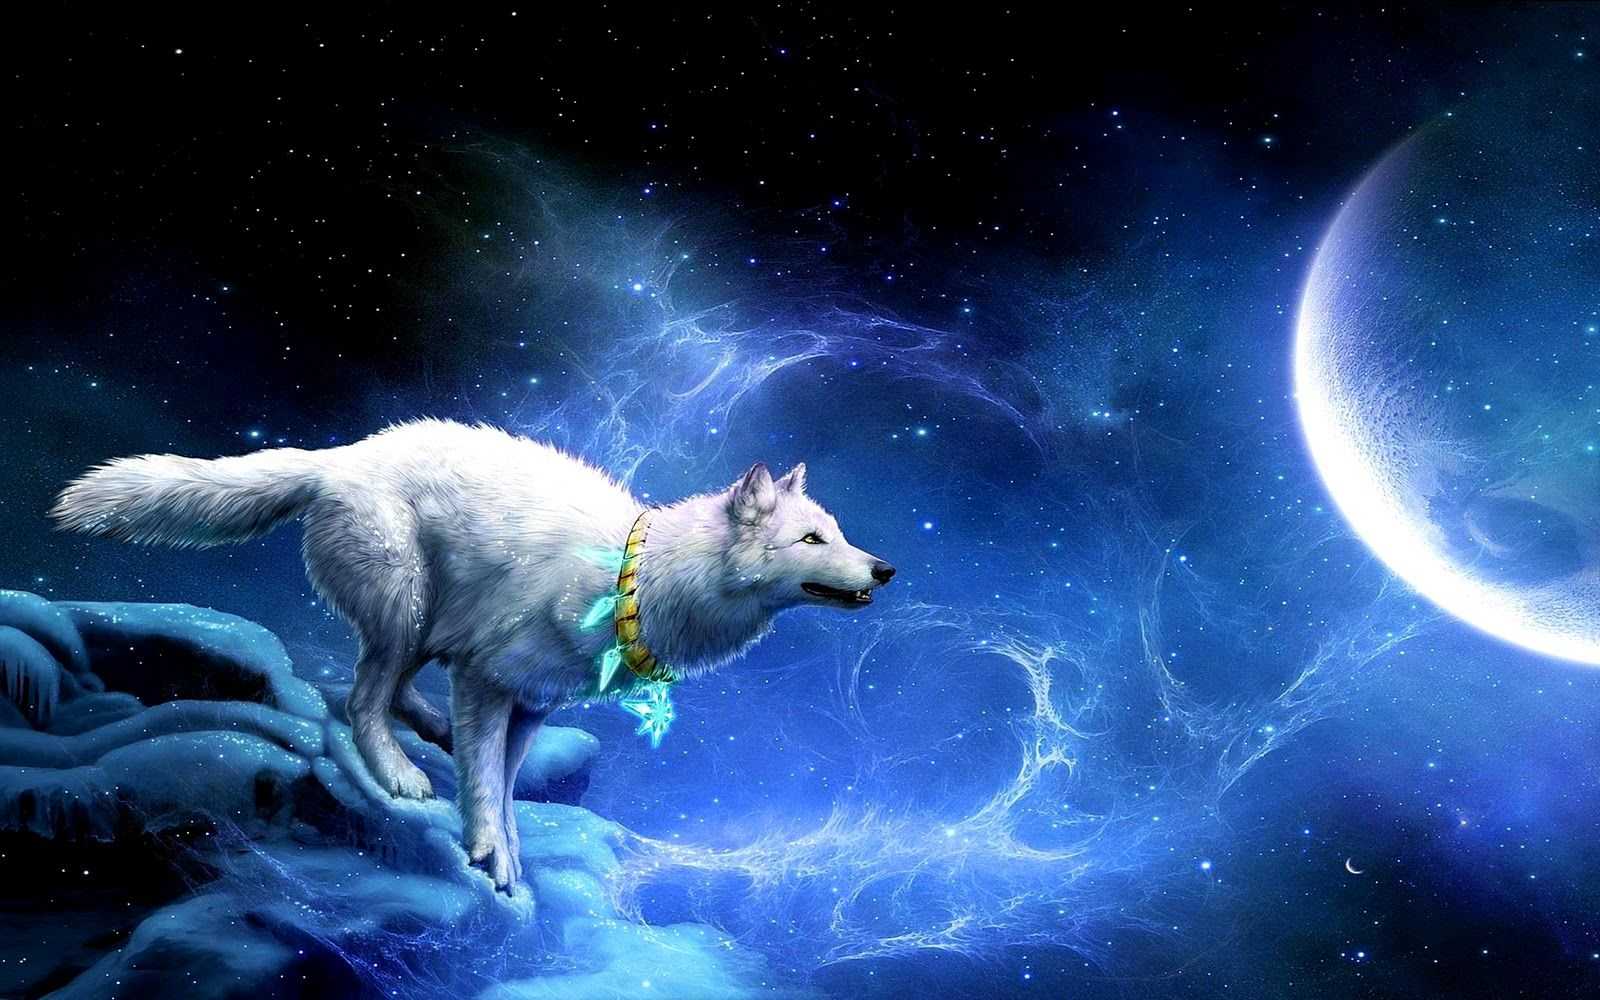 Wolf Backgrounds Wallpapers Hd Desktop Wallpapers Free Online Fantasy Wallpapers Wolf Wallpaper Fantasy Wolf Mystical Animals